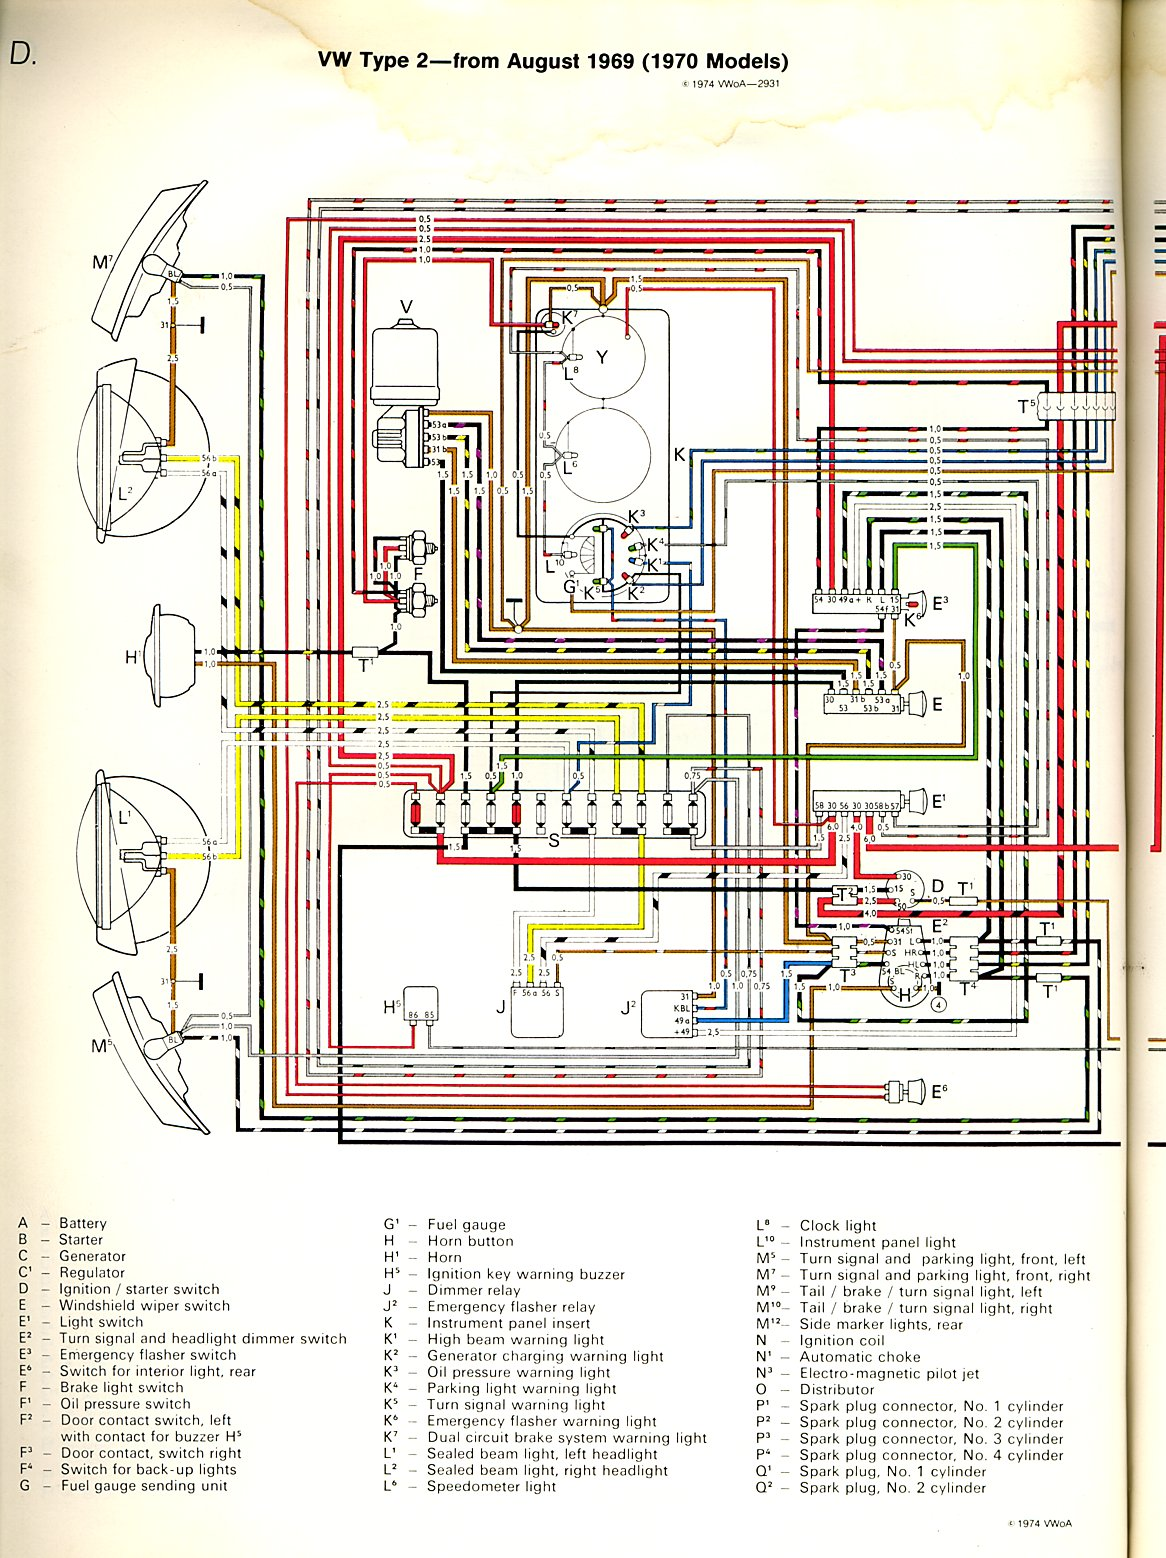 baybus_70a bus wiring diagram vw wiring harness diagram \u2022 wiring diagrams j 1971 vw bus wiring diagram at highcare.asia